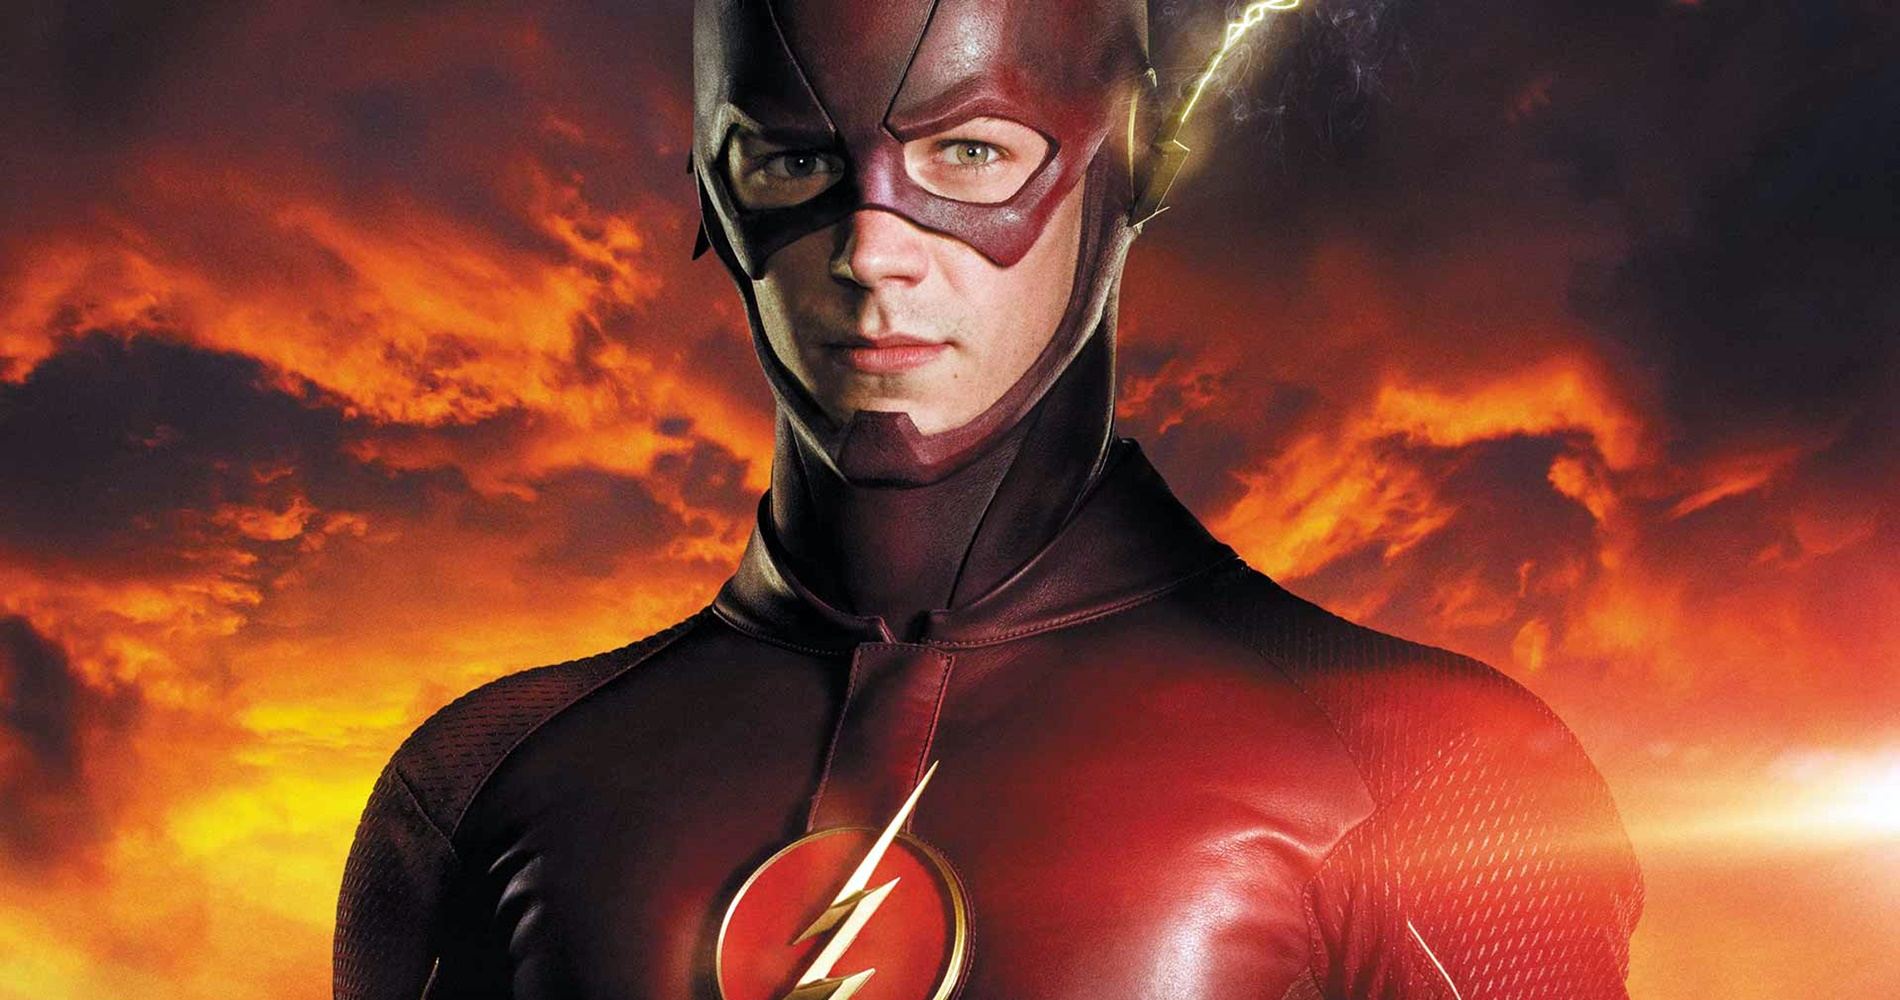 The Flash standing still and staring at the camera., movies/tv, pop culture